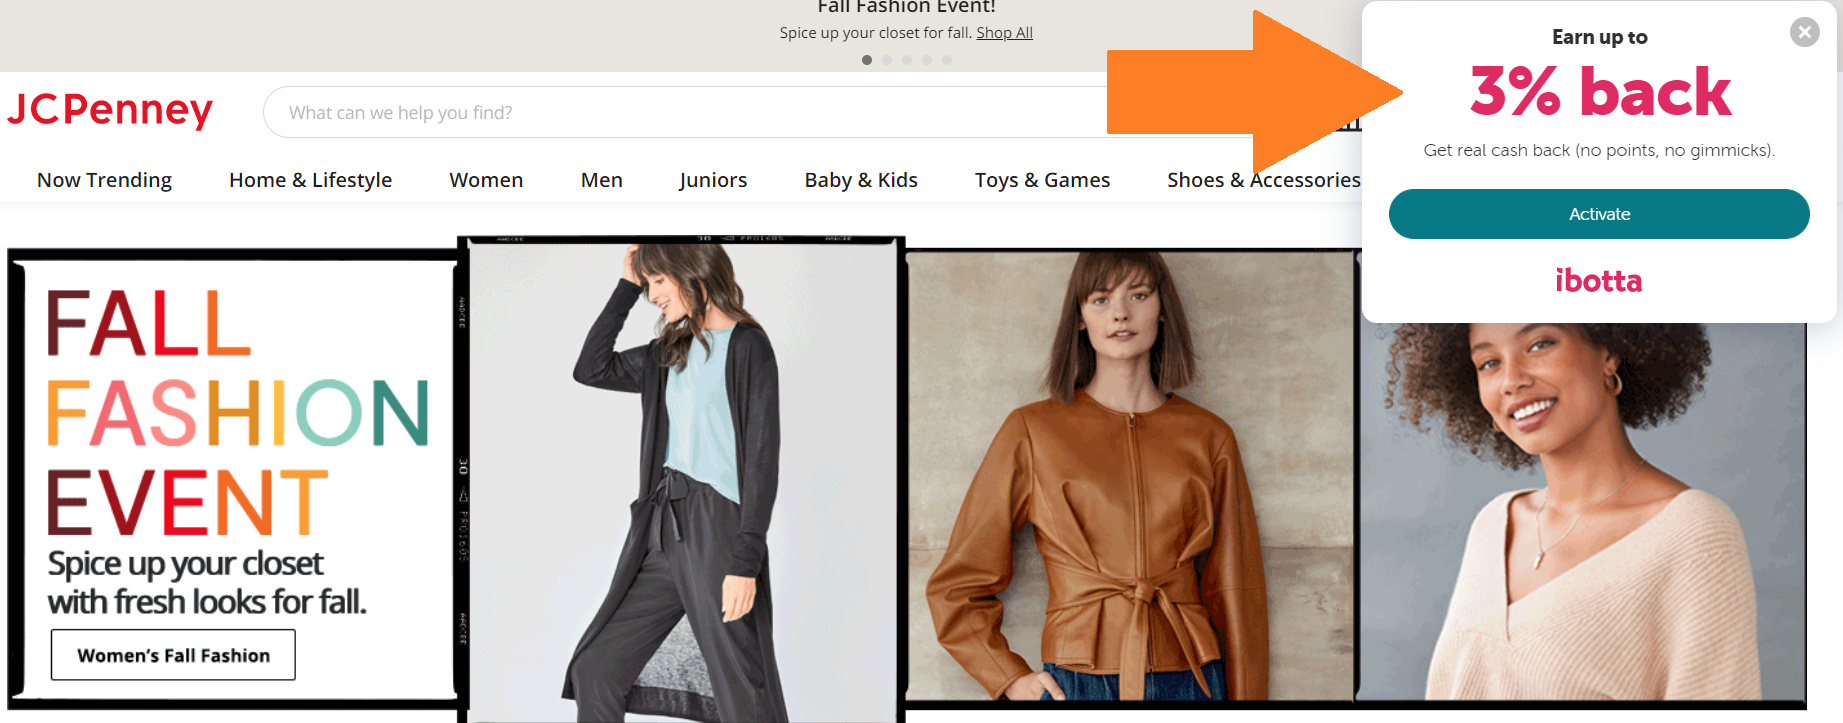 JCPenny homepage with ibotta offer on righthand corner for 3% cashback, you need to click to activate